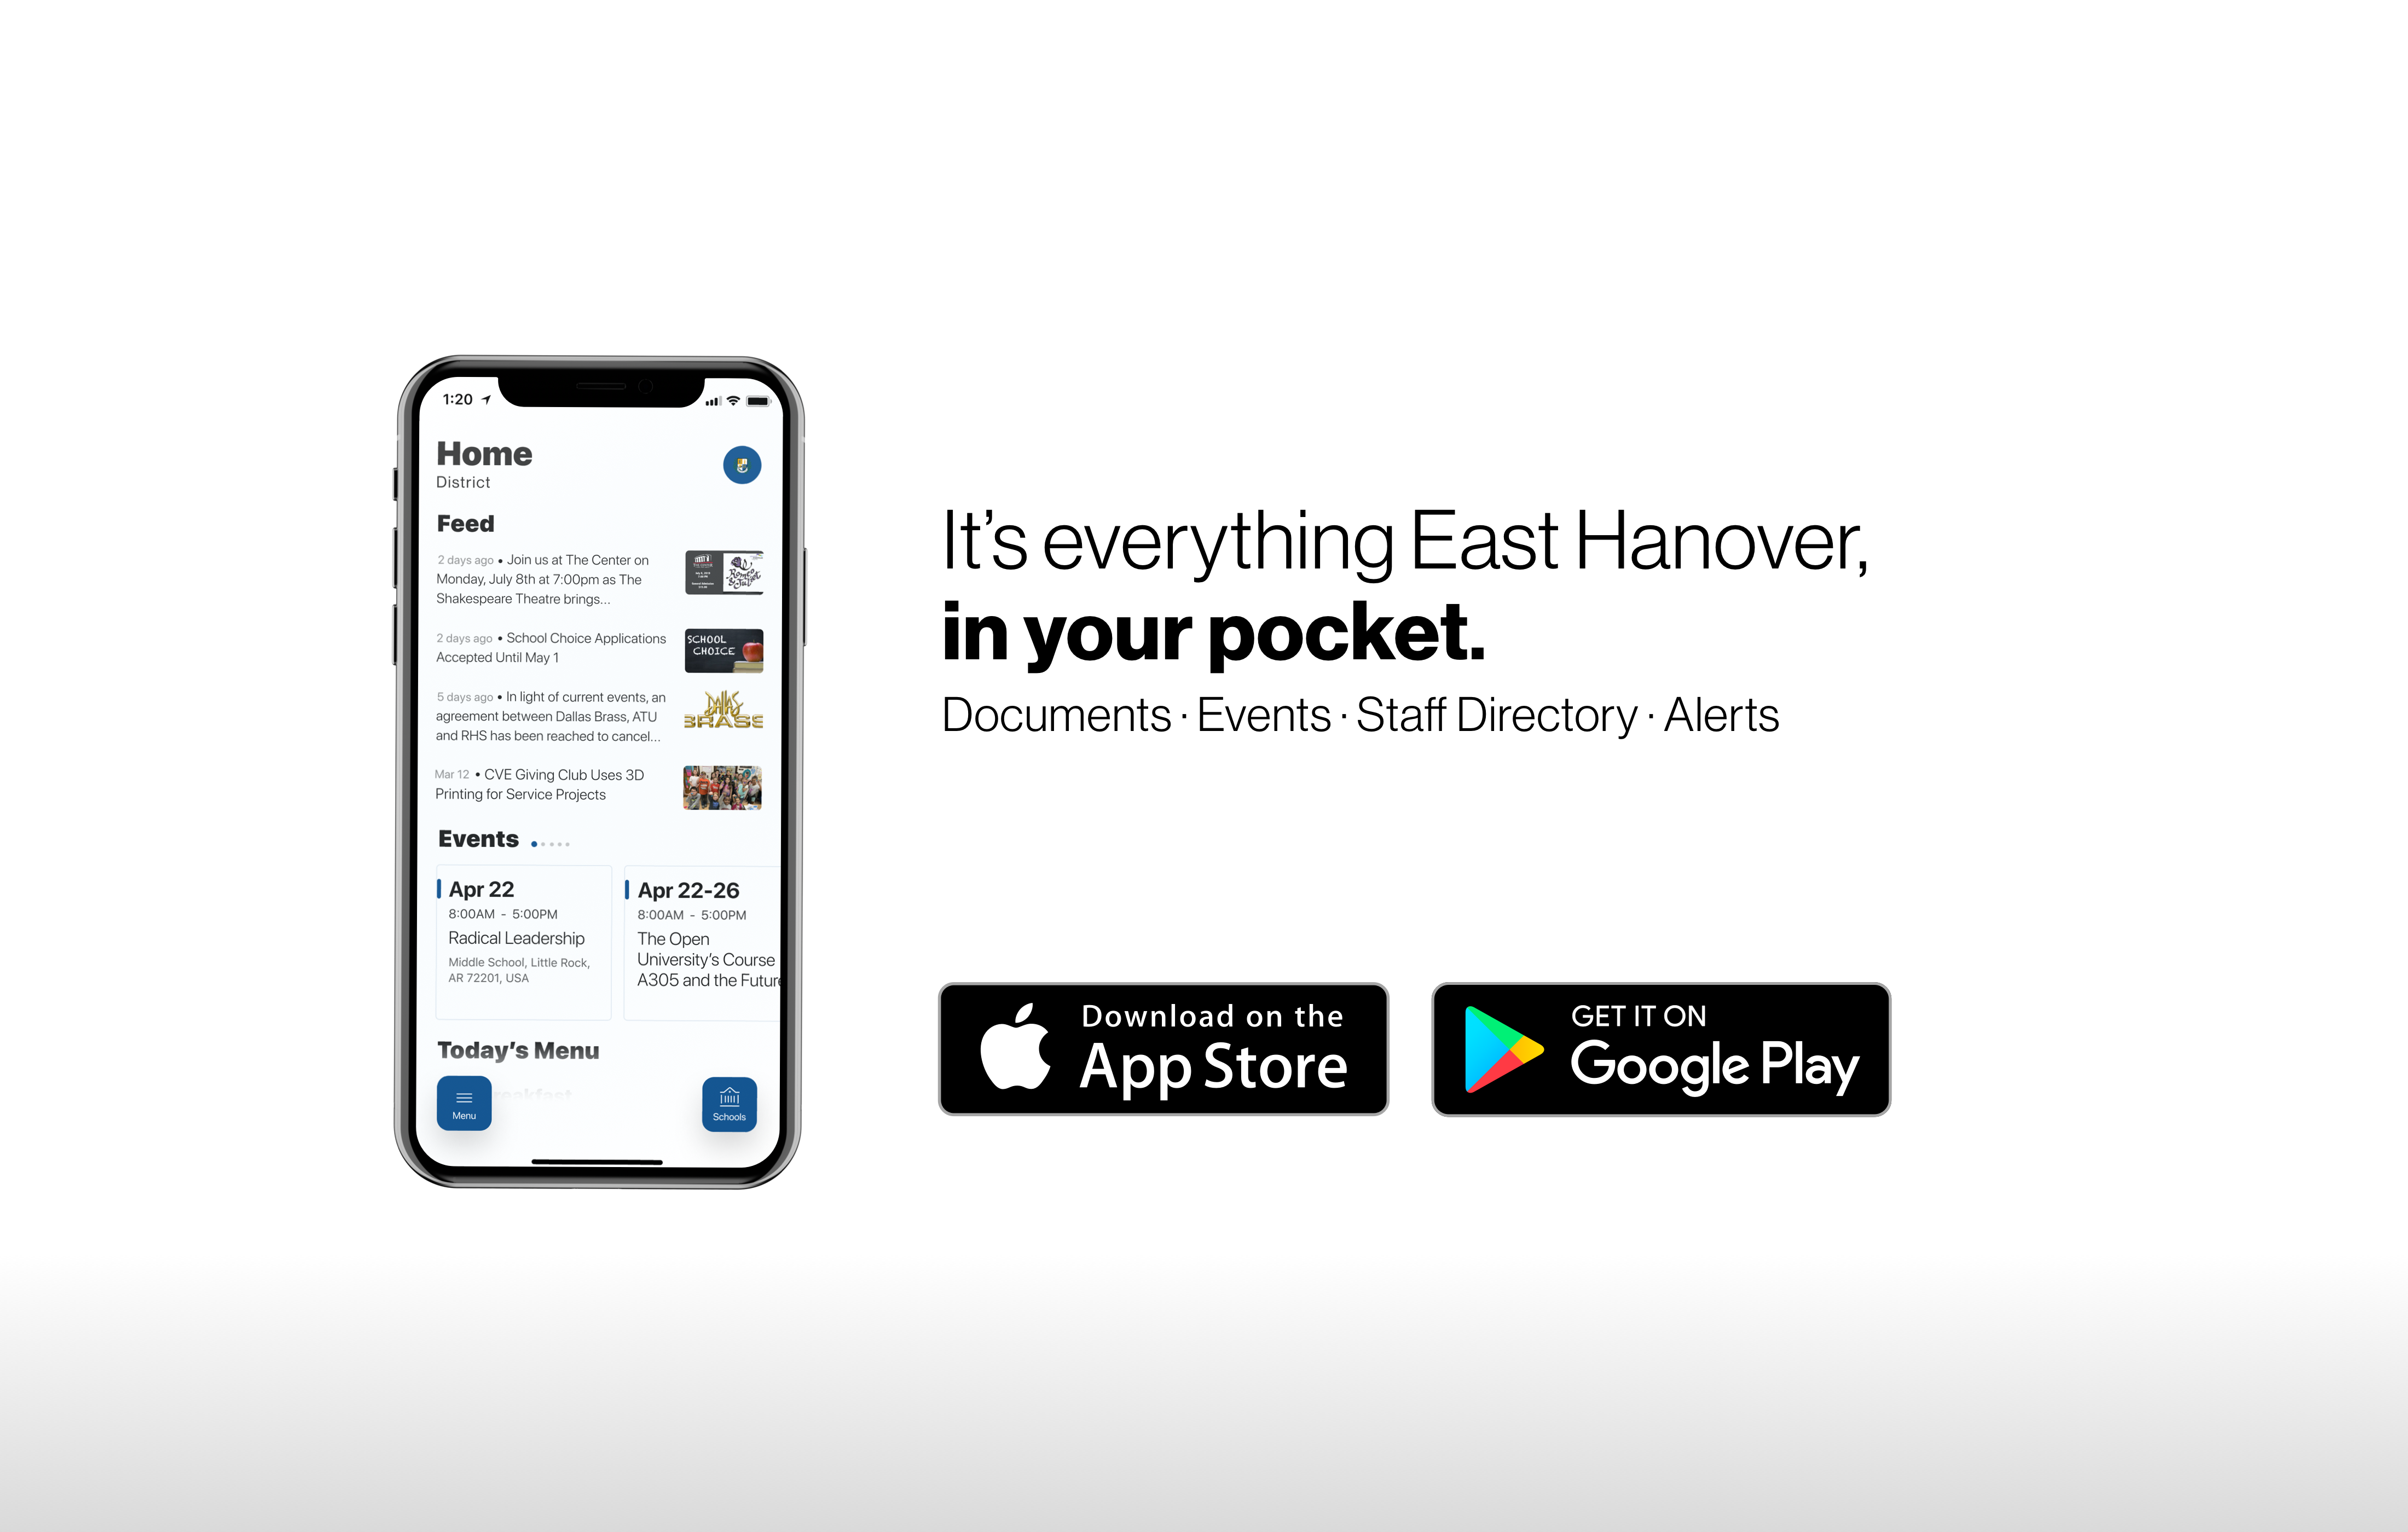 It's everything East Hanover in your pocket